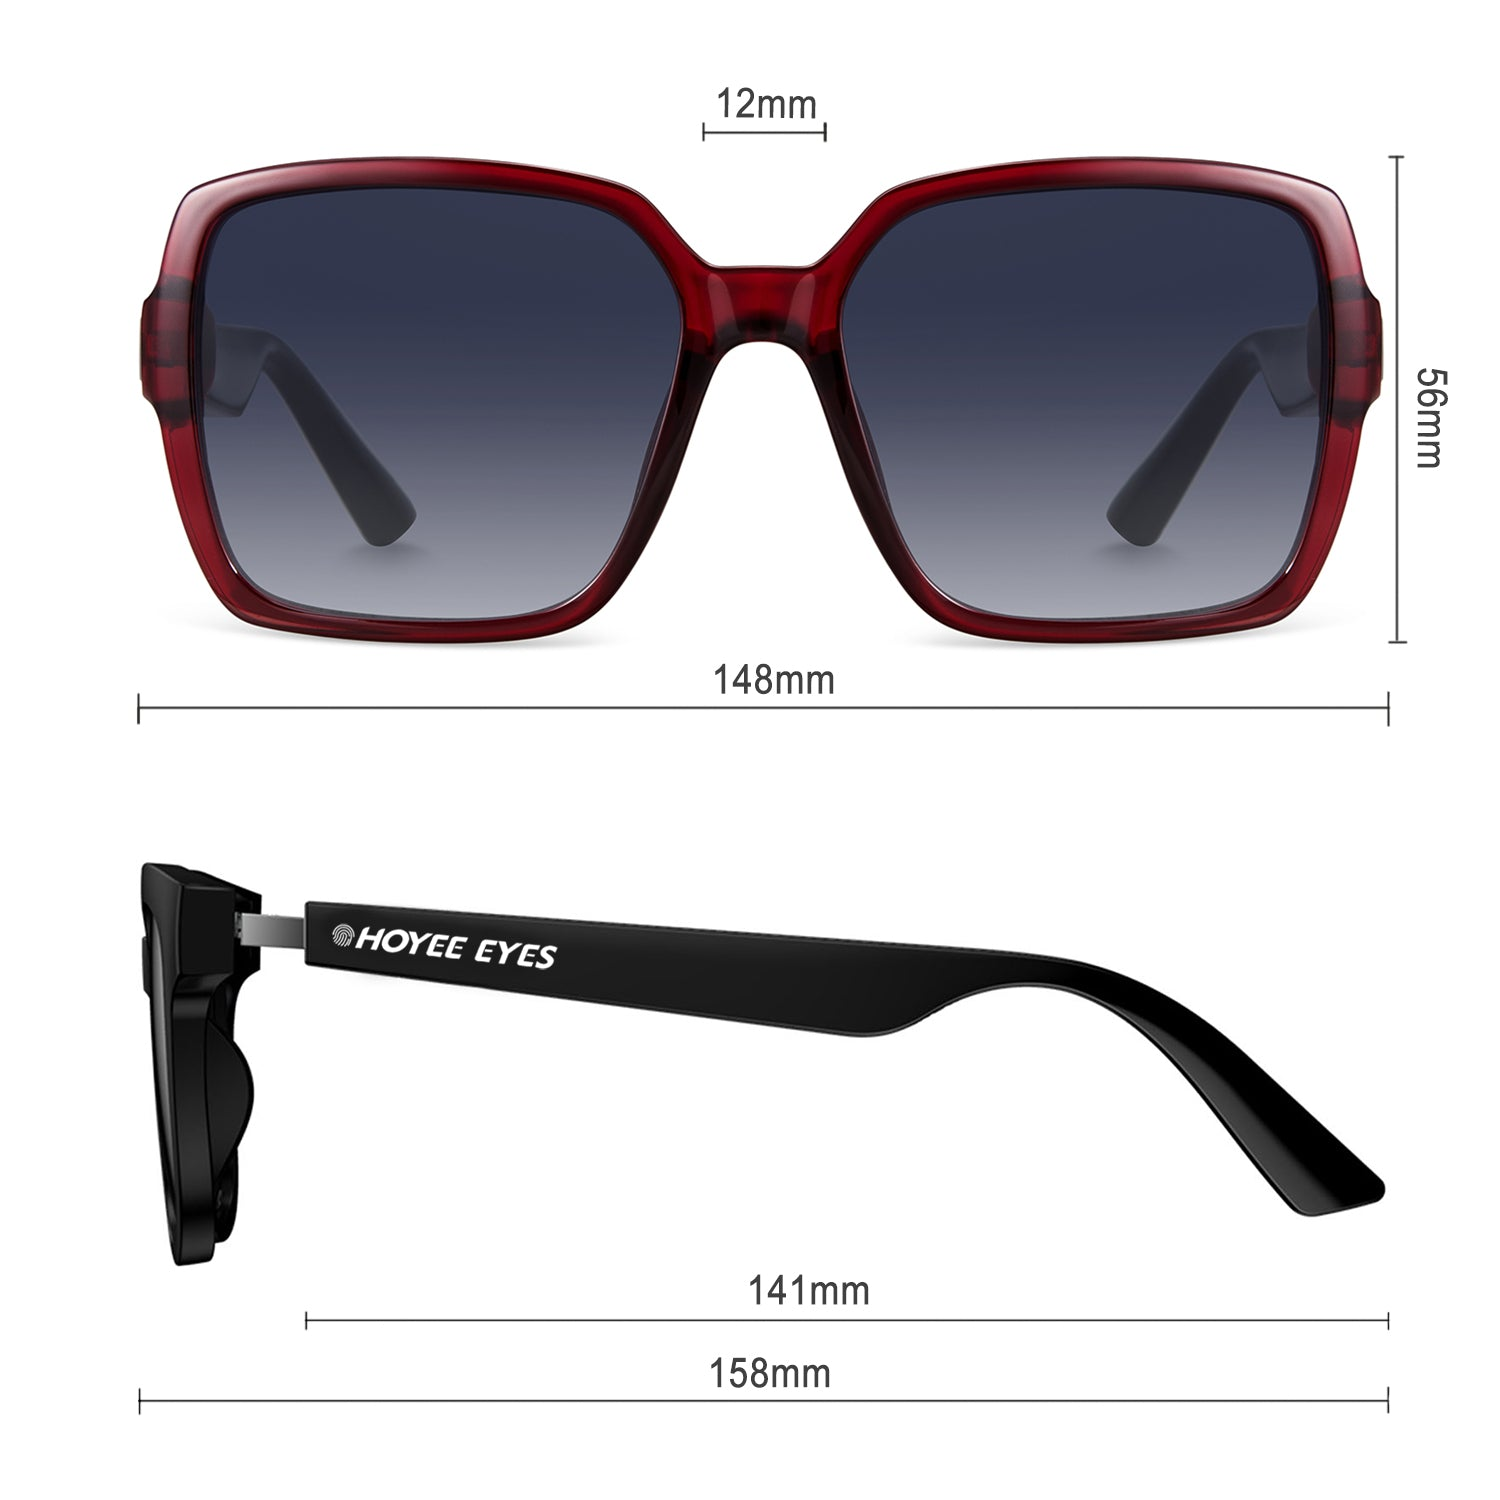 hoyee eyes monarch ruby smart audio sunglasses dimensions